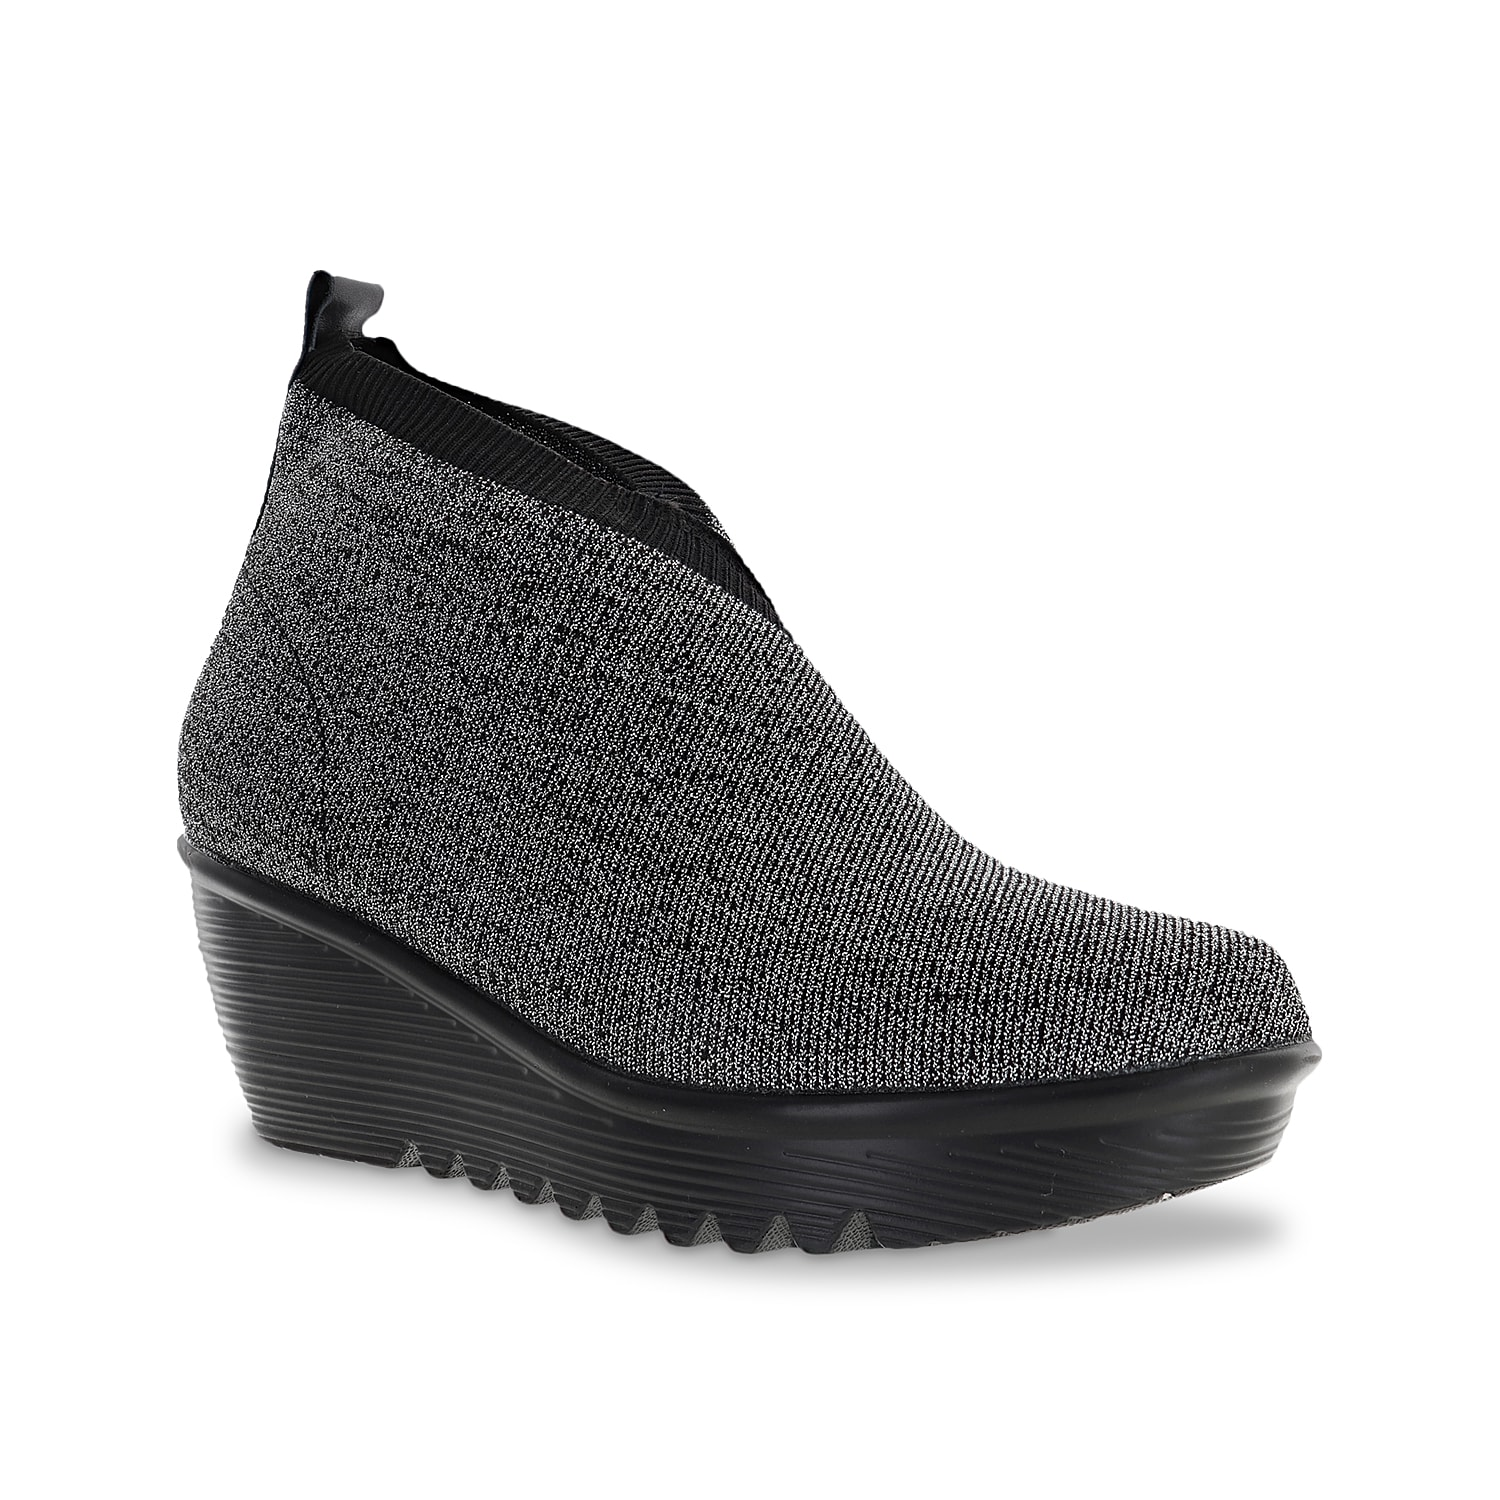 The Sally wedge slip-on from Bernie Mev adds instant chic sophistication along with cushy comfort. This wedge slip-on has a stretchy upper with a wrapped look, ribbed cuff, a leather pull loop, and cozy memory foam padding.